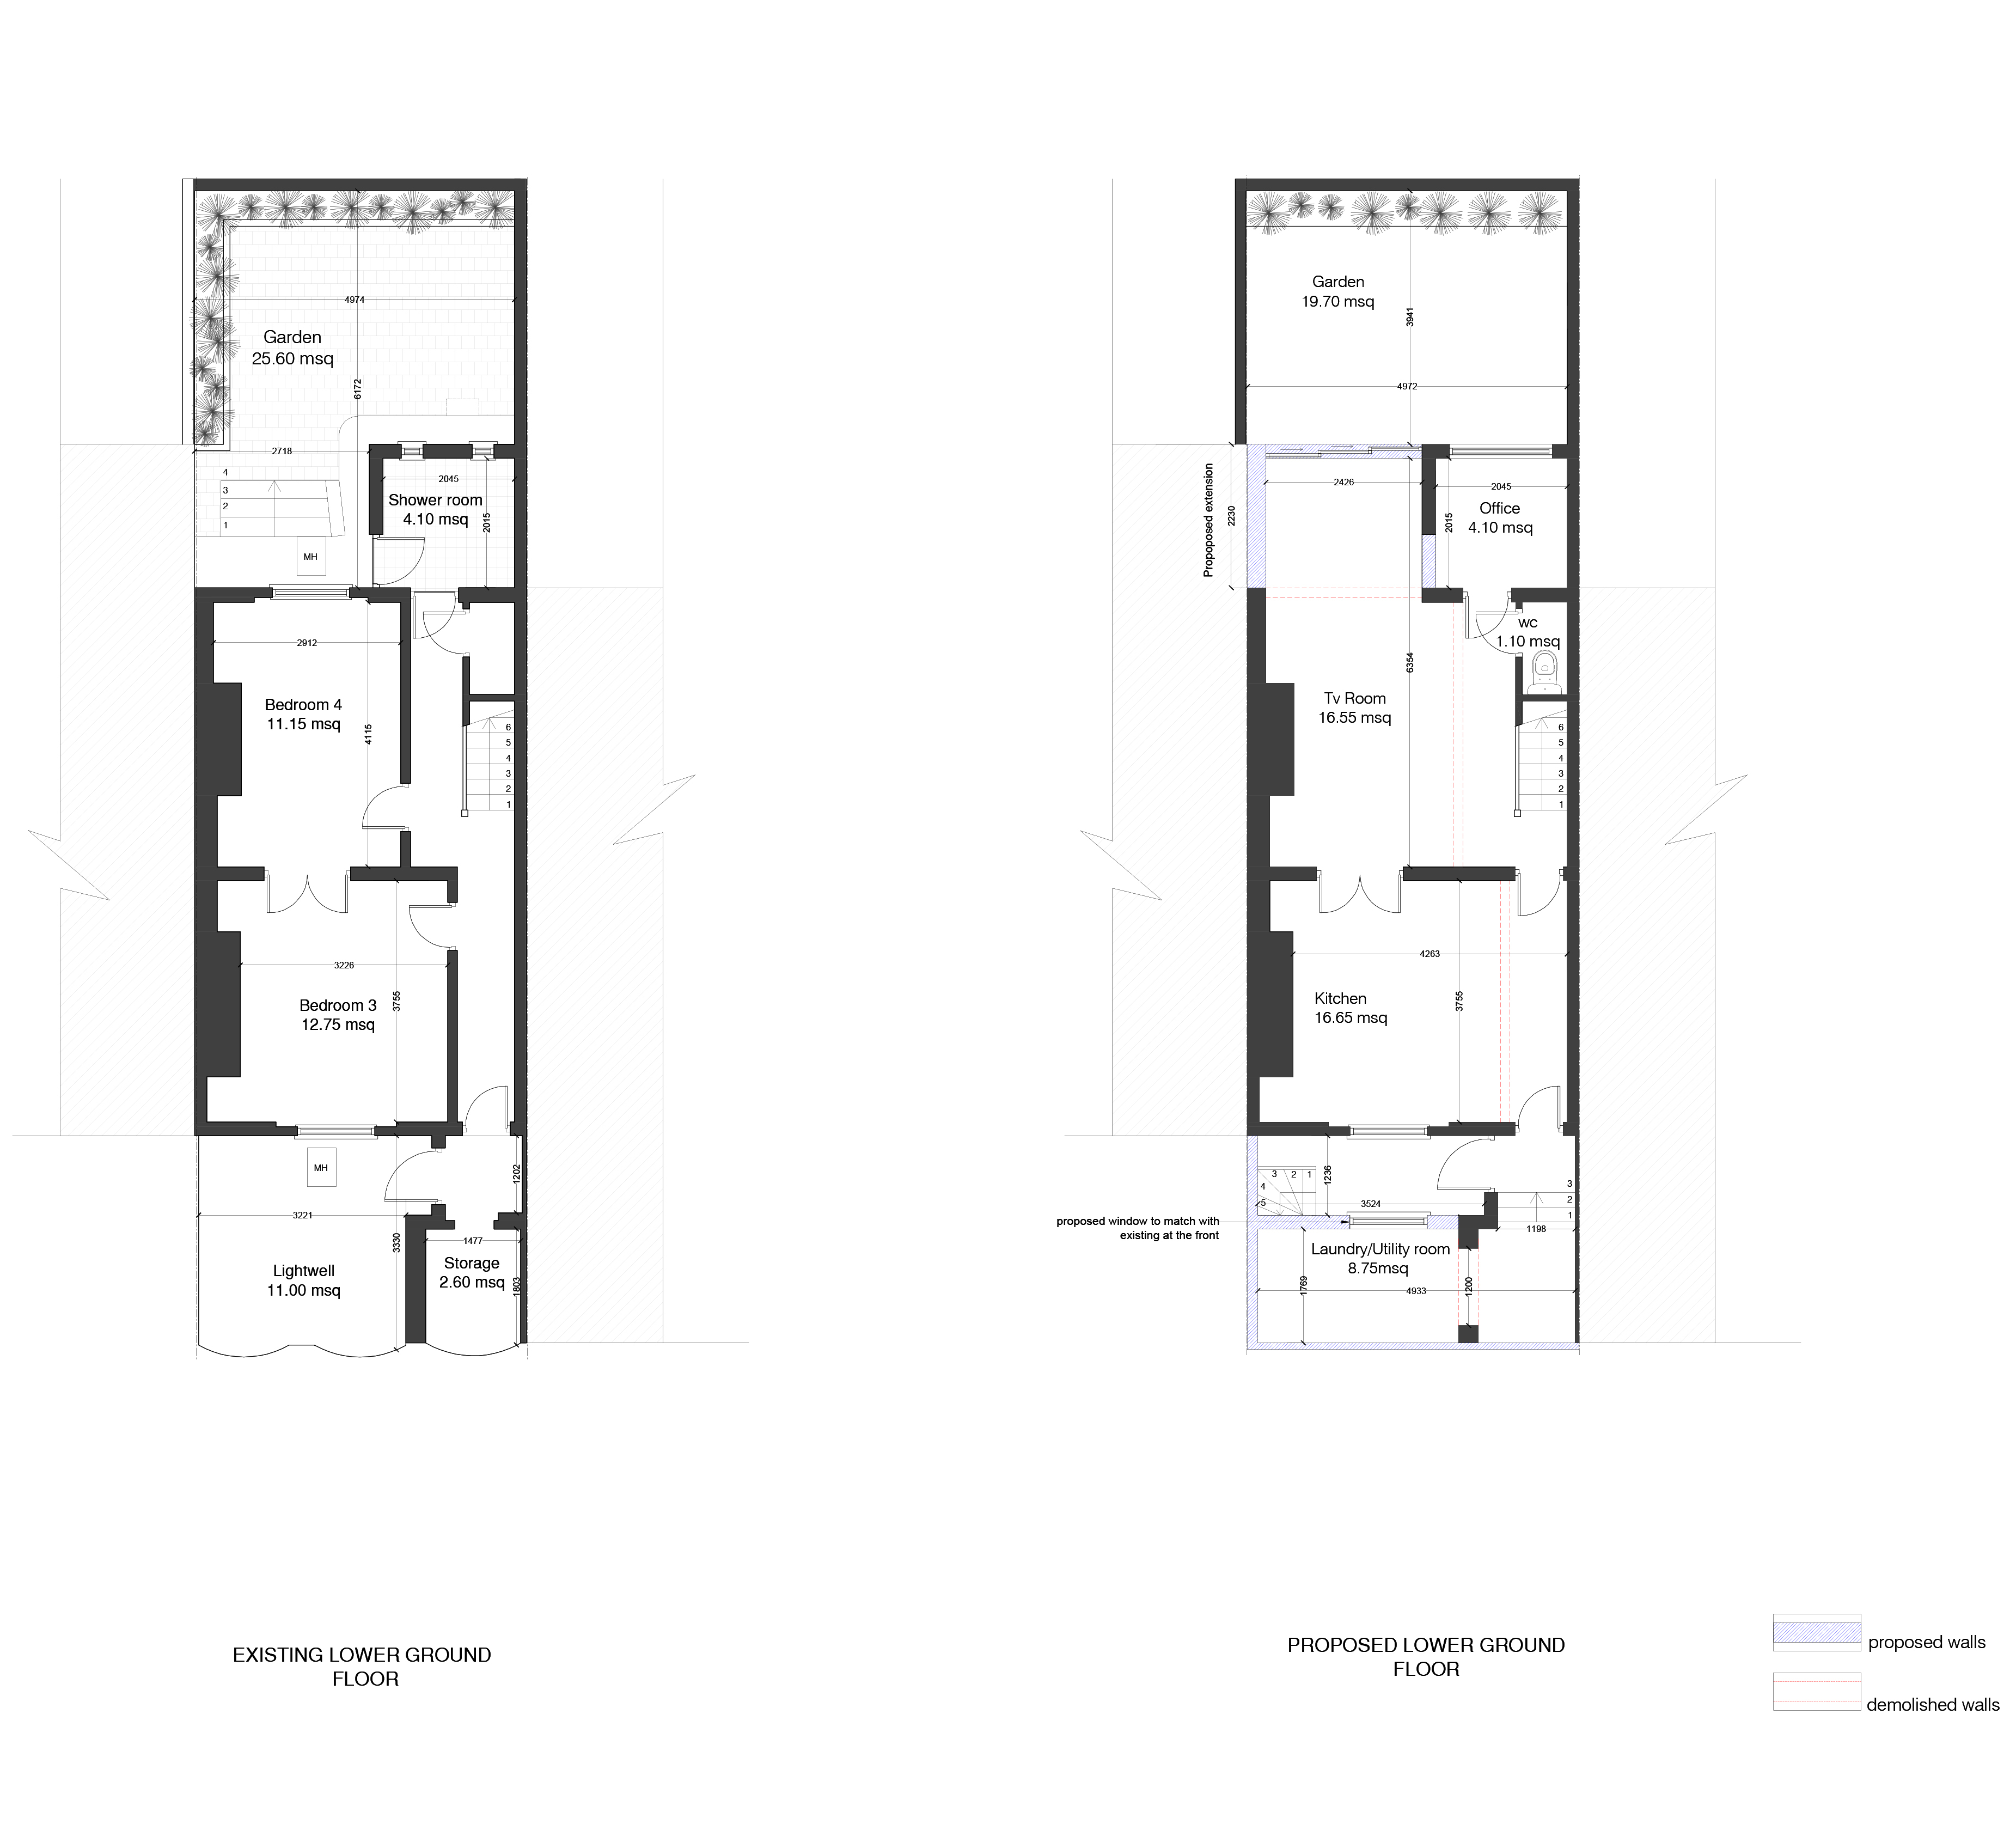 Existing & Proposed Ground Floor